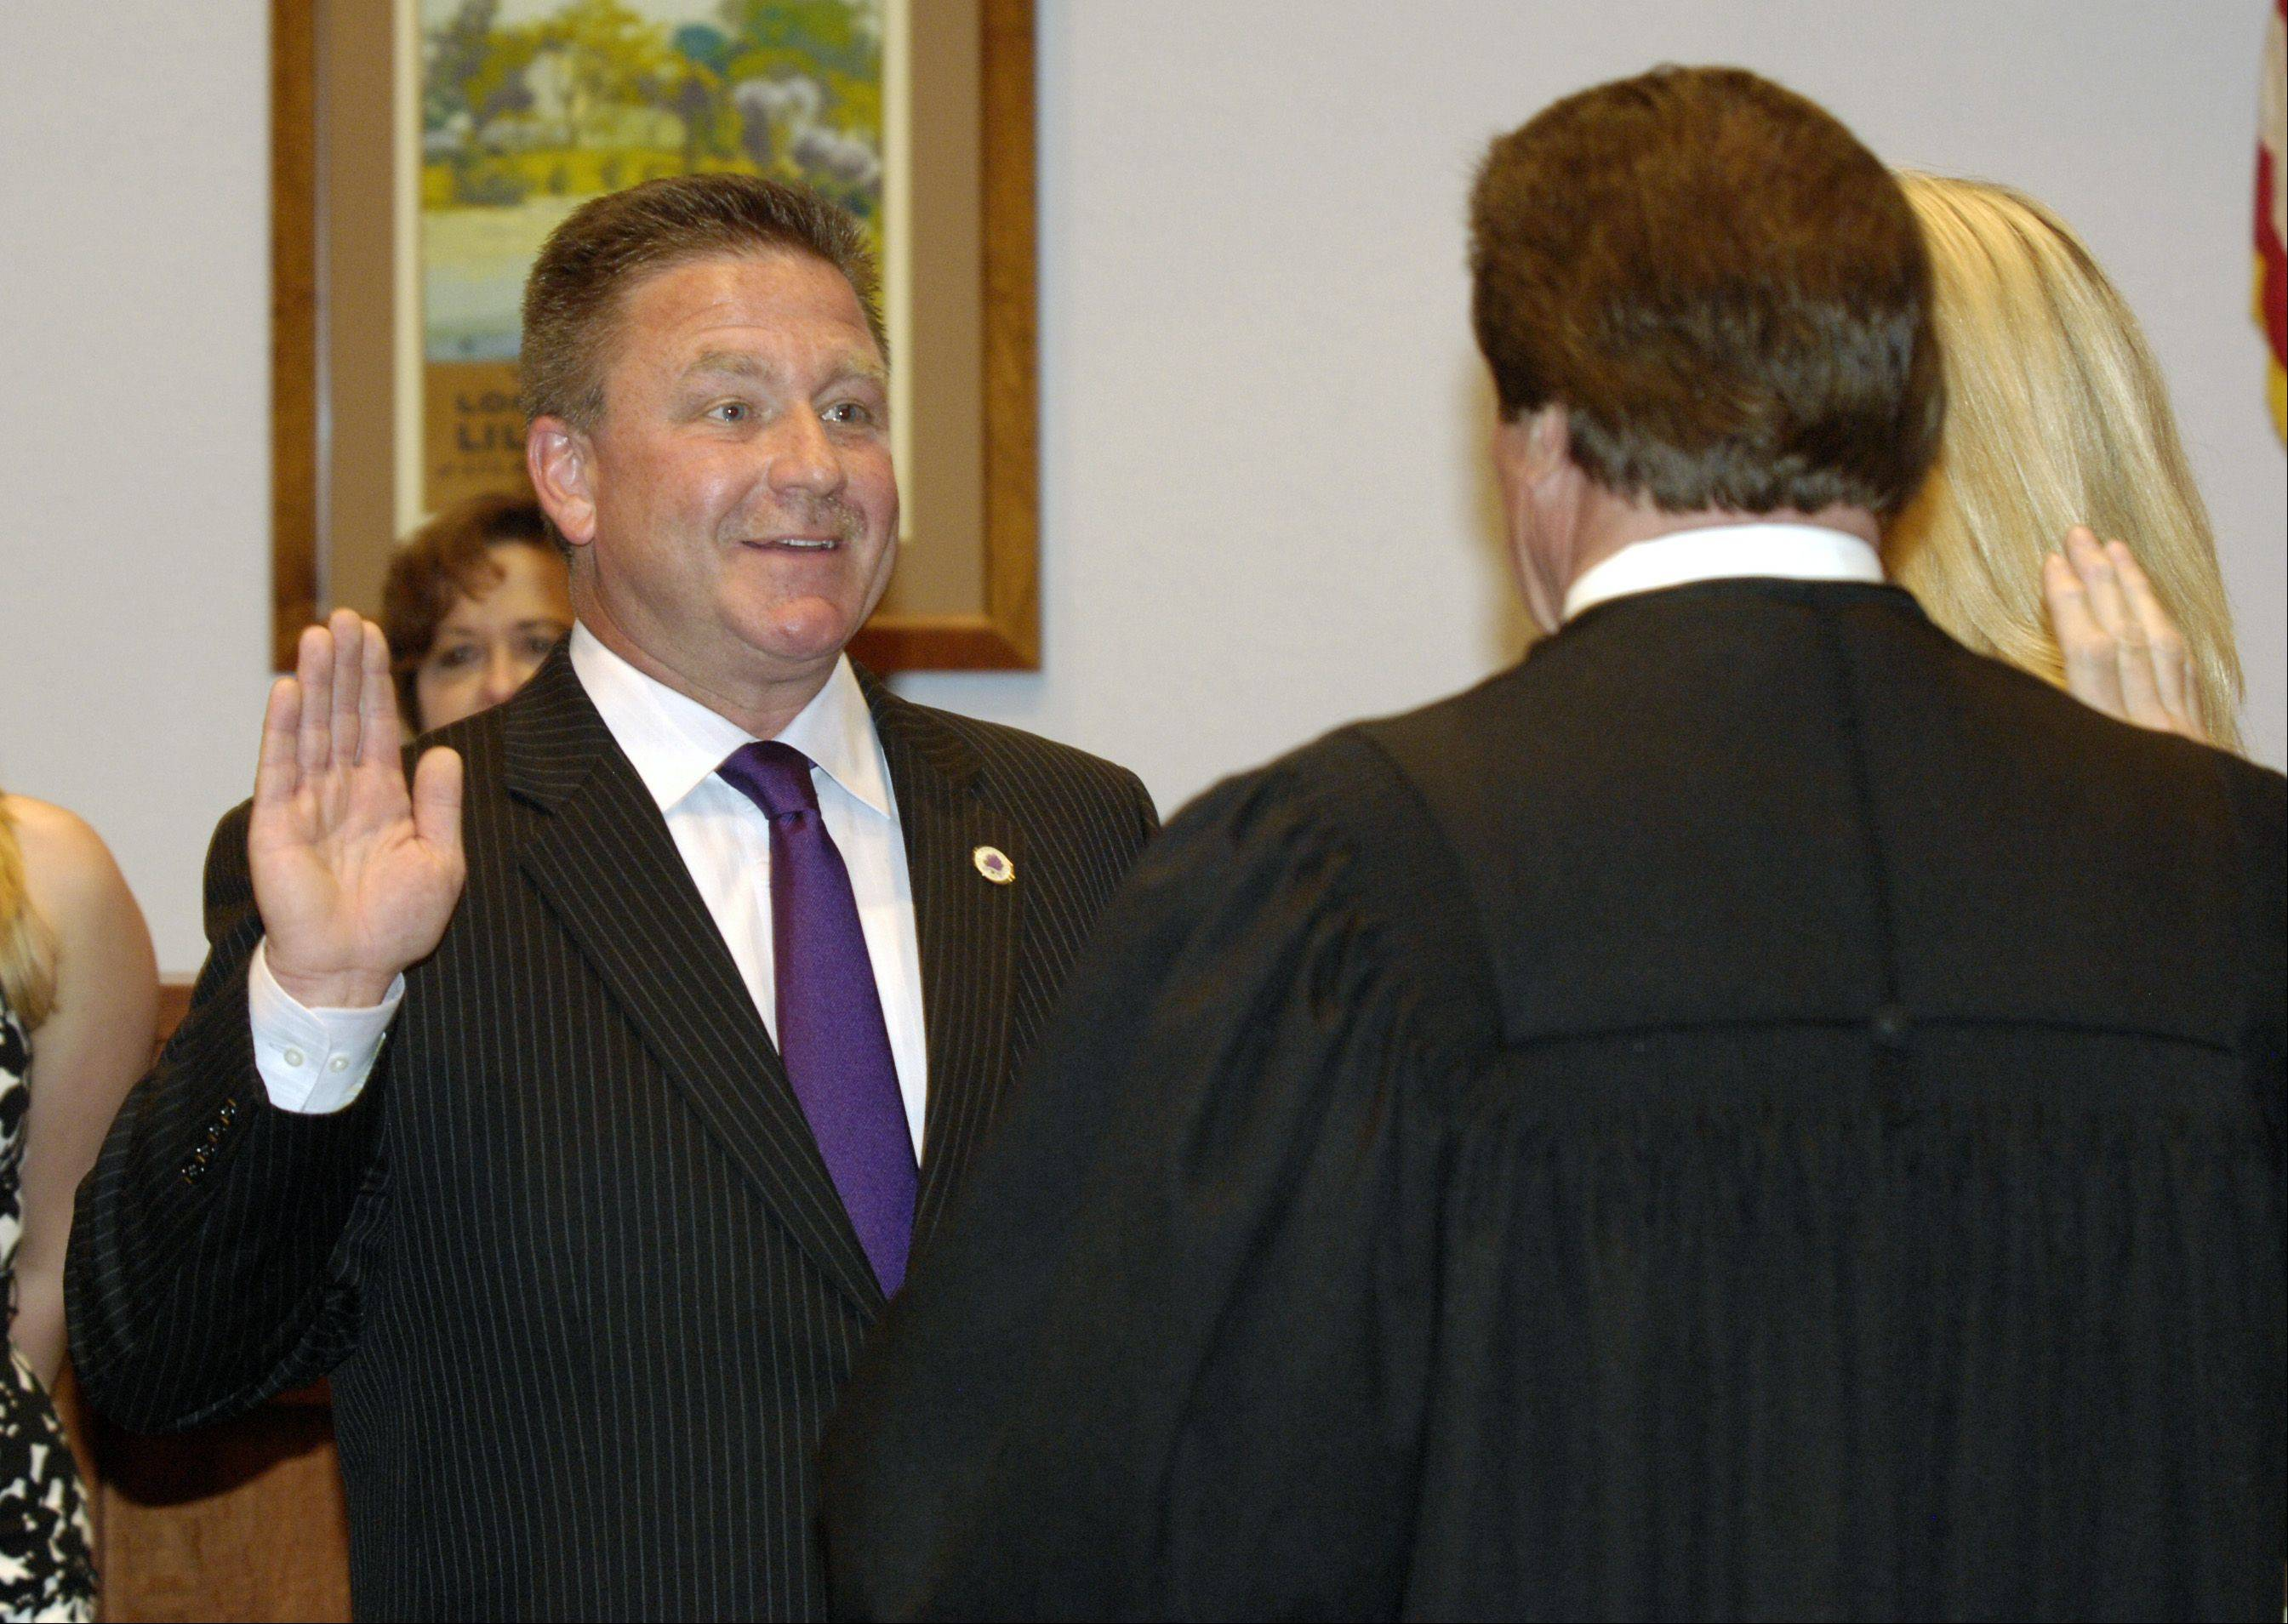 Keith Giagnorio is sworn in Thursday night as the new Lombard village president by DuPage County Judge Patrick O'Shea.